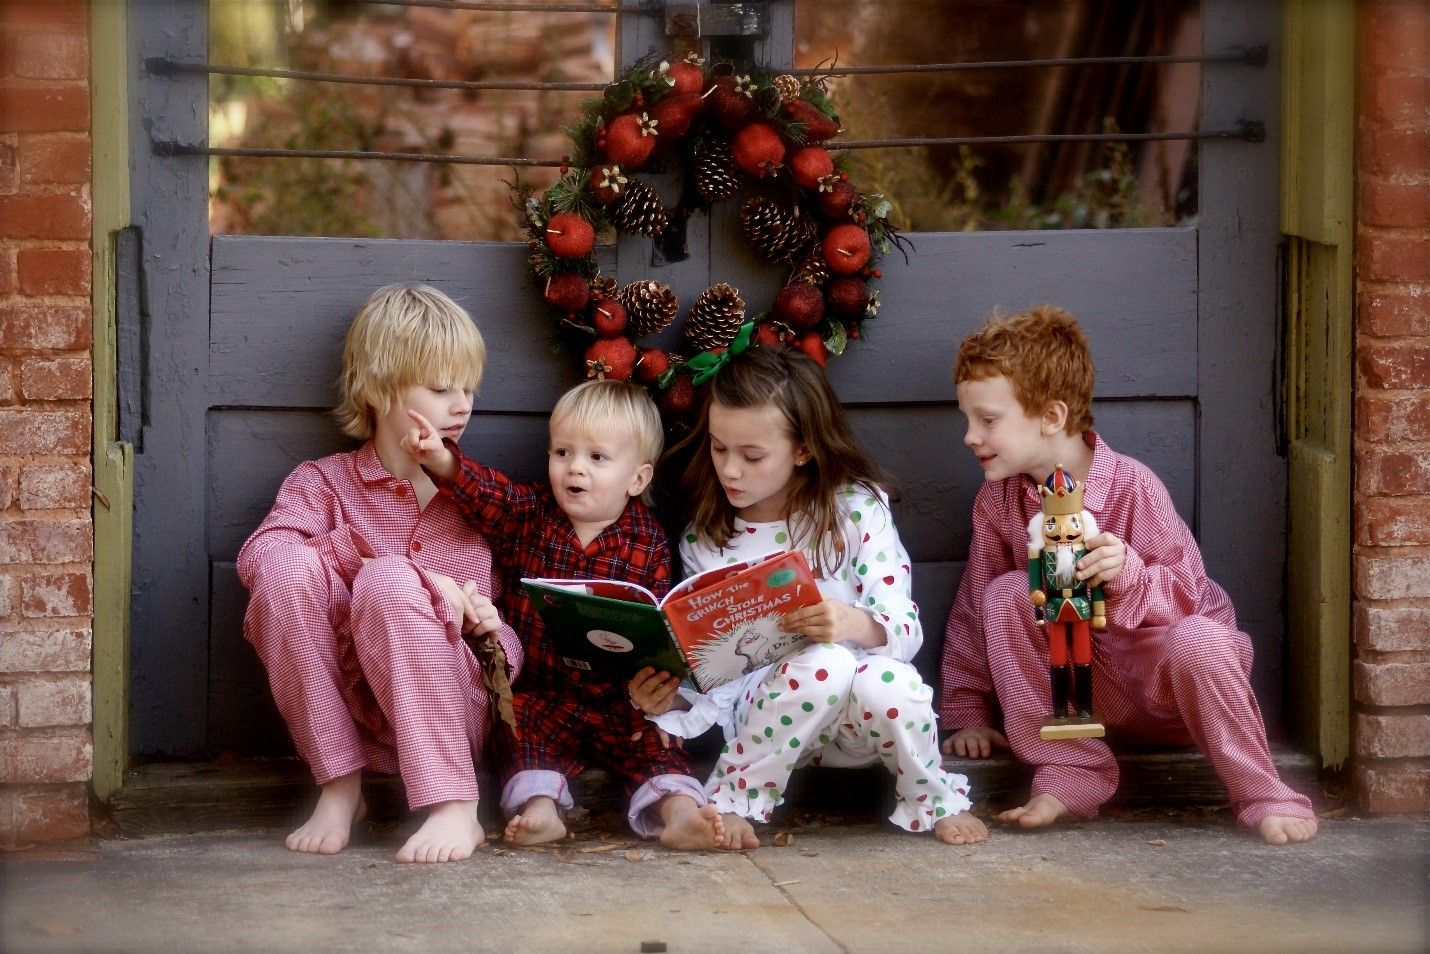 This Christmas- have your children use their imagination more by reading and playing together with their toys.  Turn off the TV and video games.  They will have a lot of fun and learn team work.